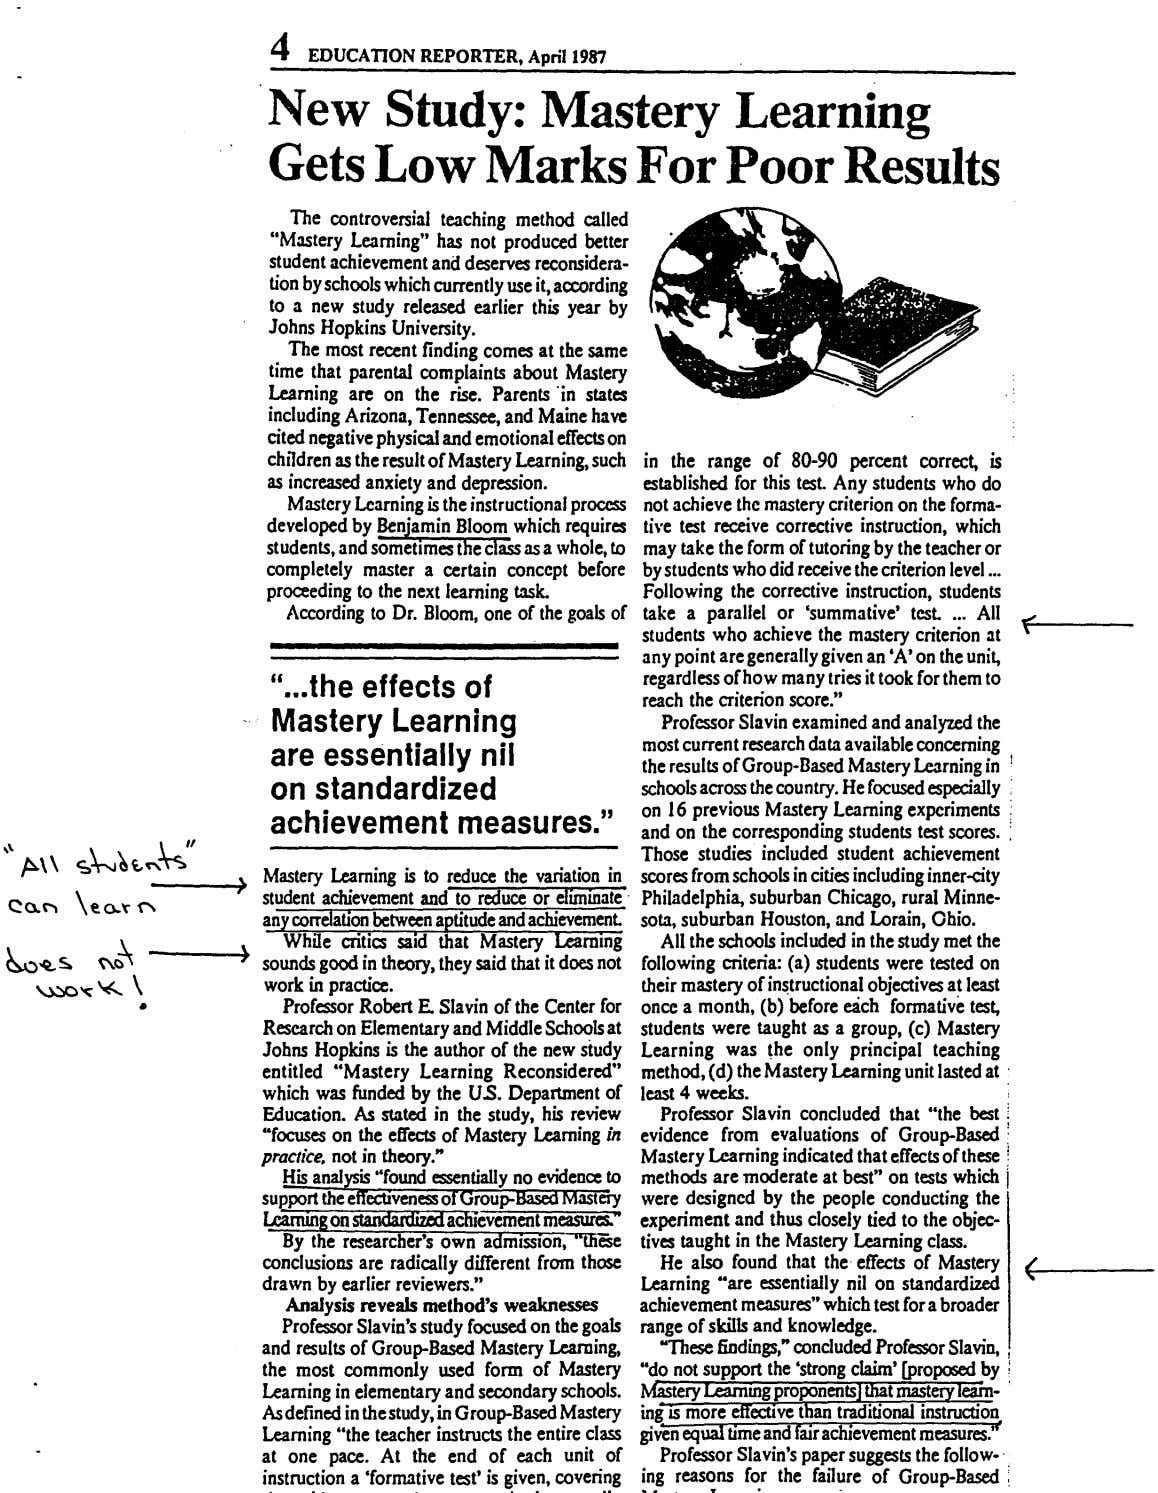 4 EDUCATION REPORTER, April 1987 New Study : Mastery Learning Gets Low Marks For Poor